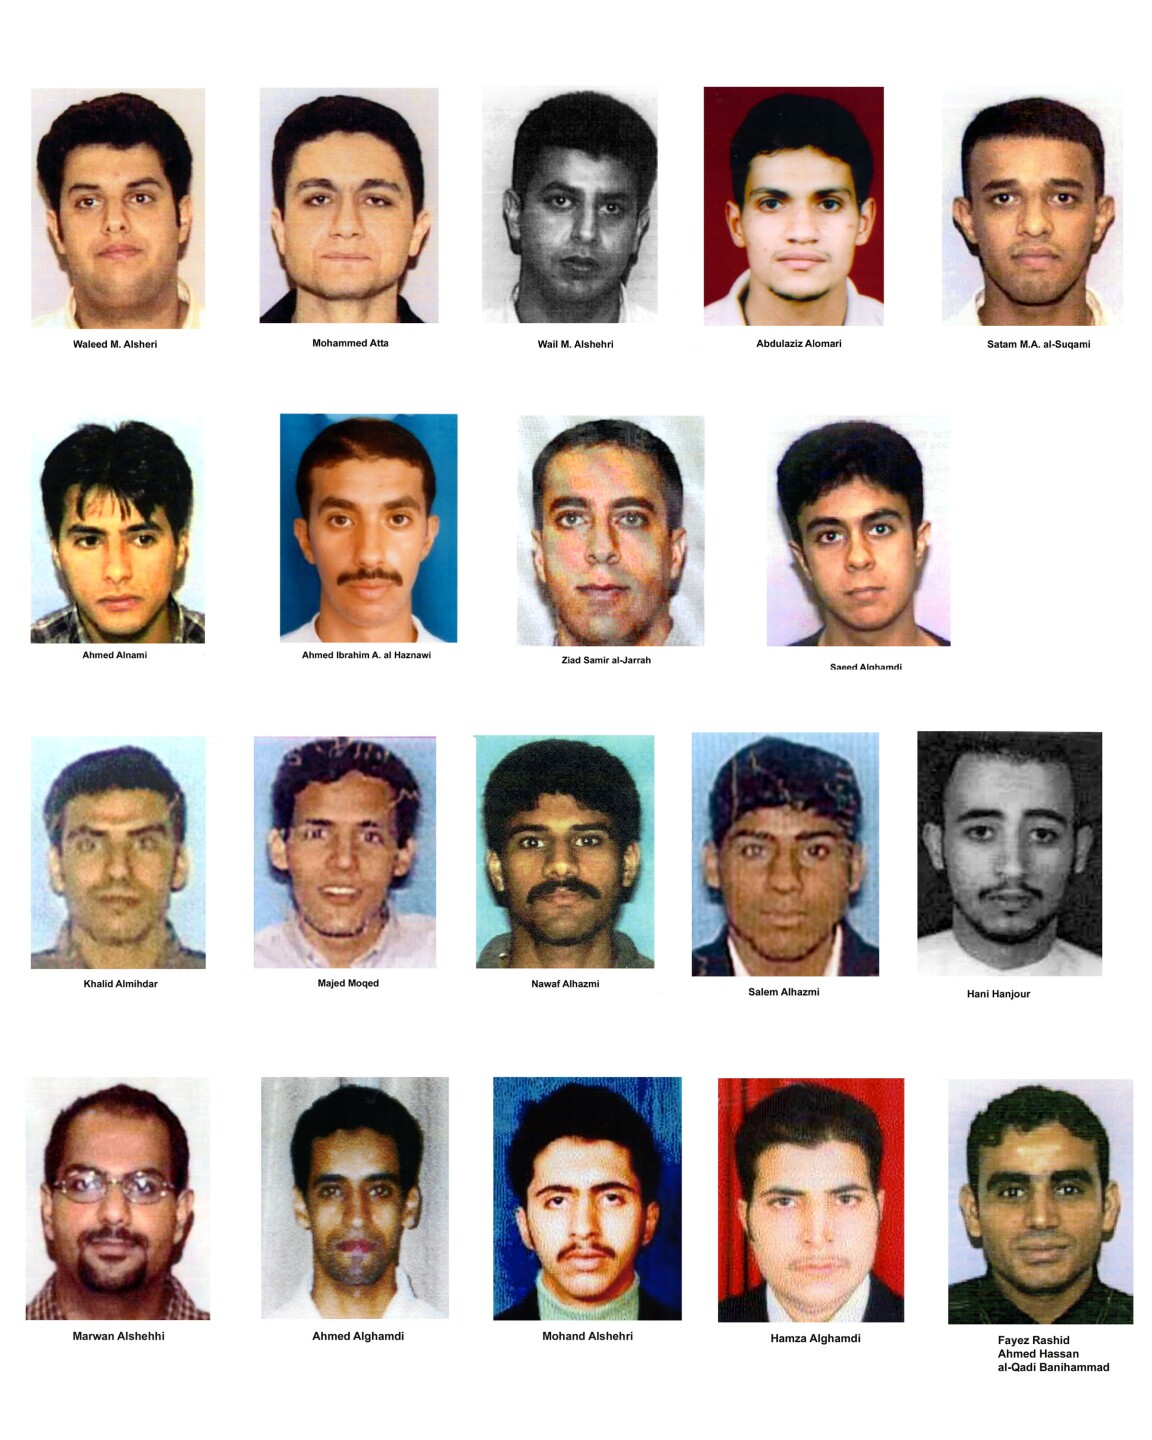 FBI released an updated list of the 19 hijackers